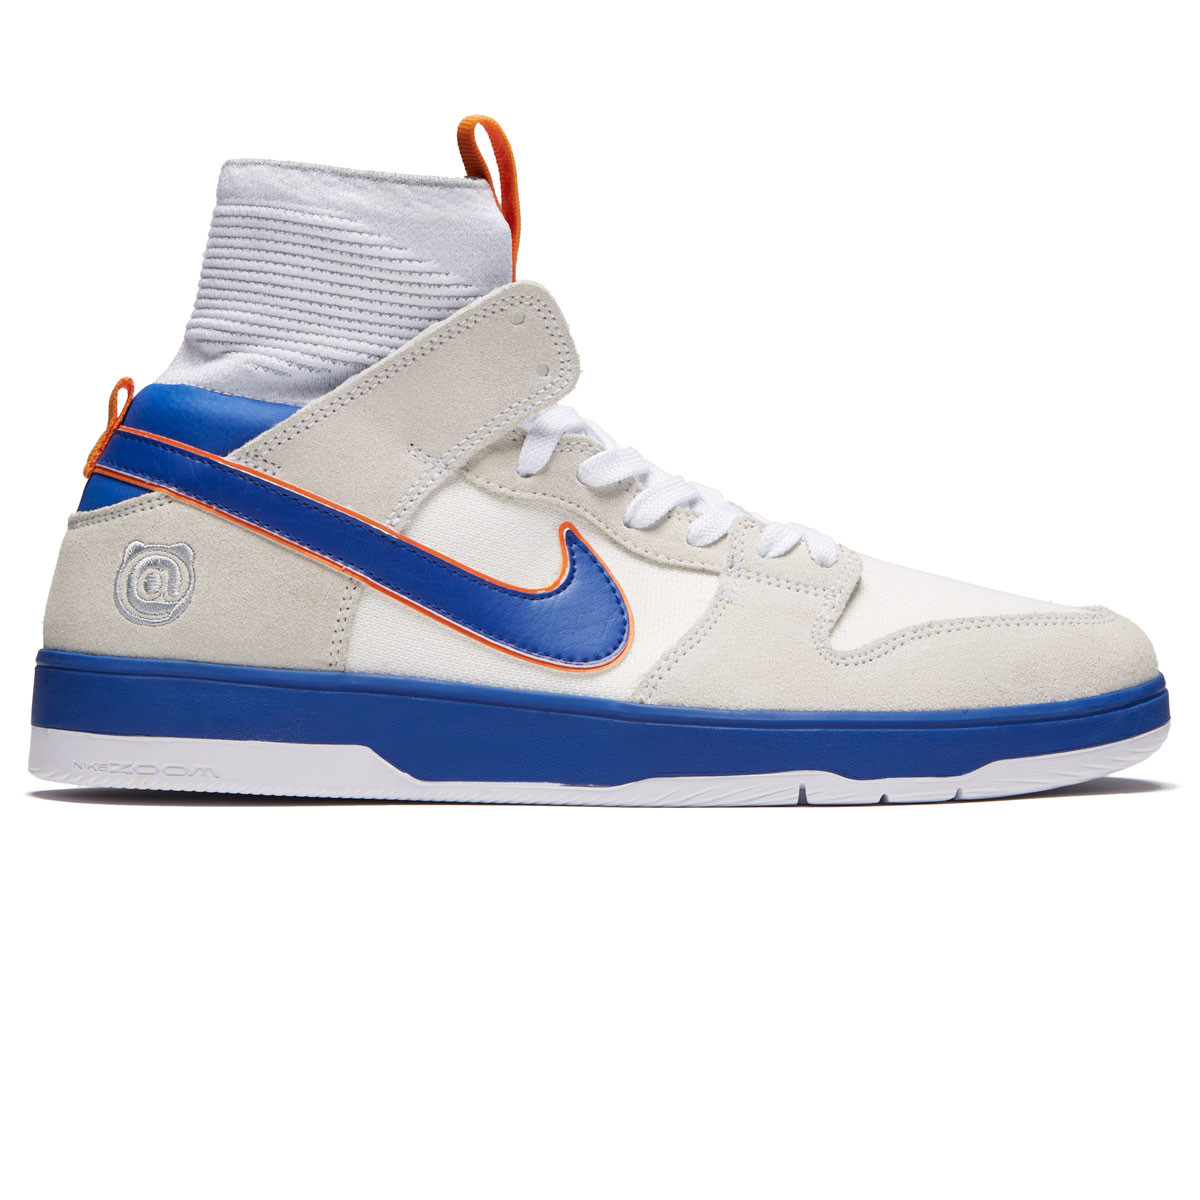 a72b090611b7 Nike SB x Medicom Dunk High Elite QS Shoes - White College Blue Gold ...